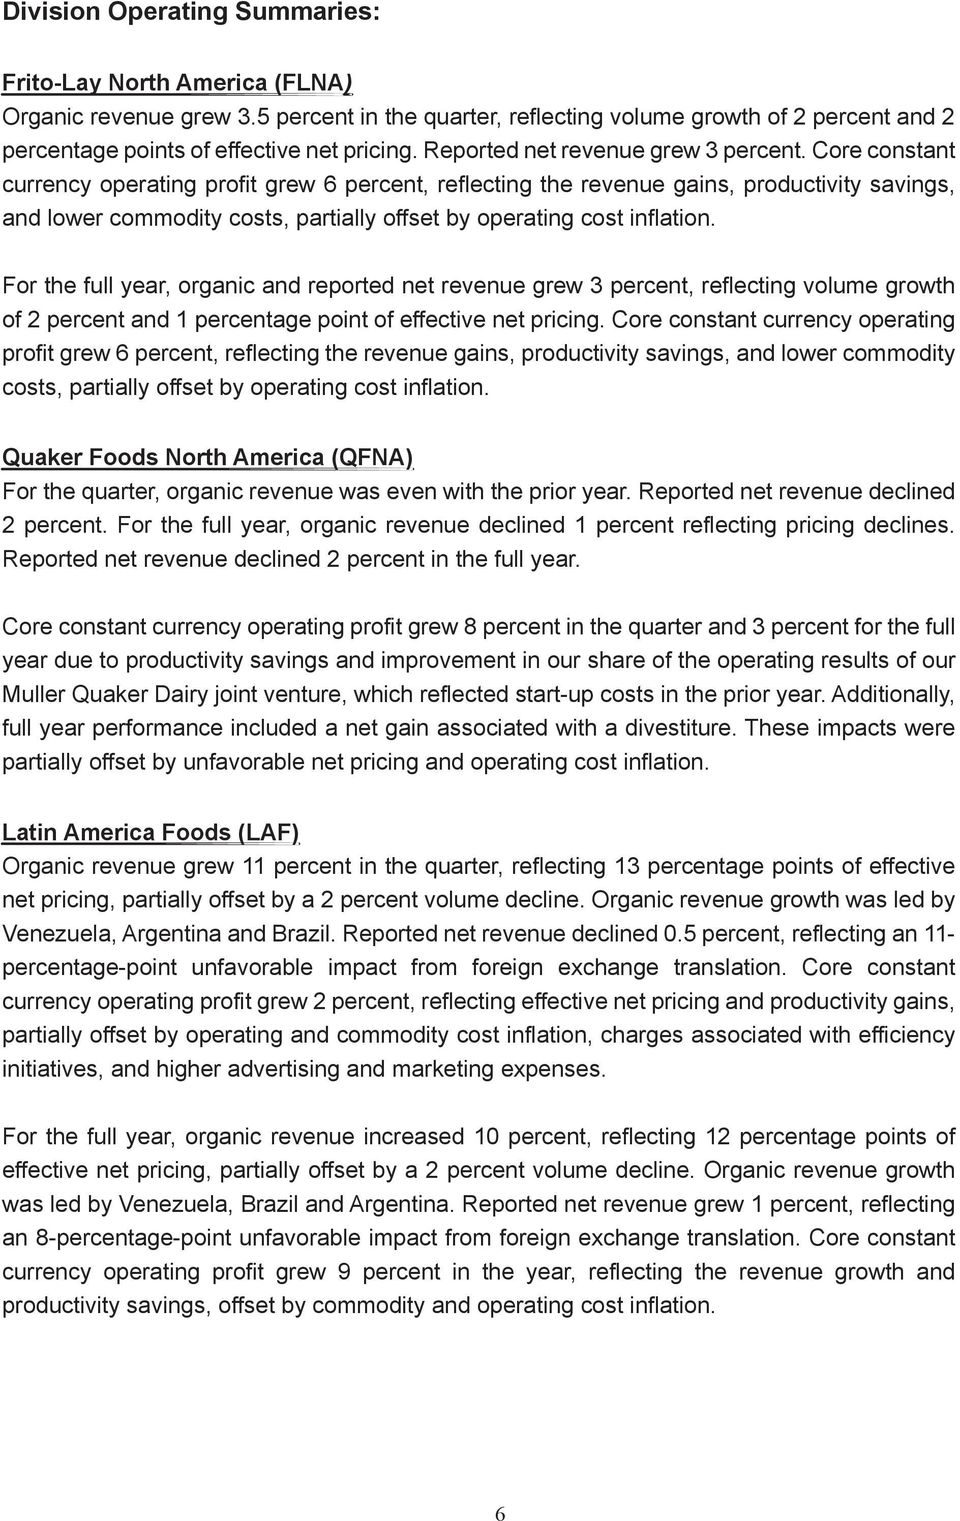 Core constant currency operating profit grew 6 percent, reflecting the revenue gains, productivity savings, lower commodity costs, partially offset by operating cost inflation.